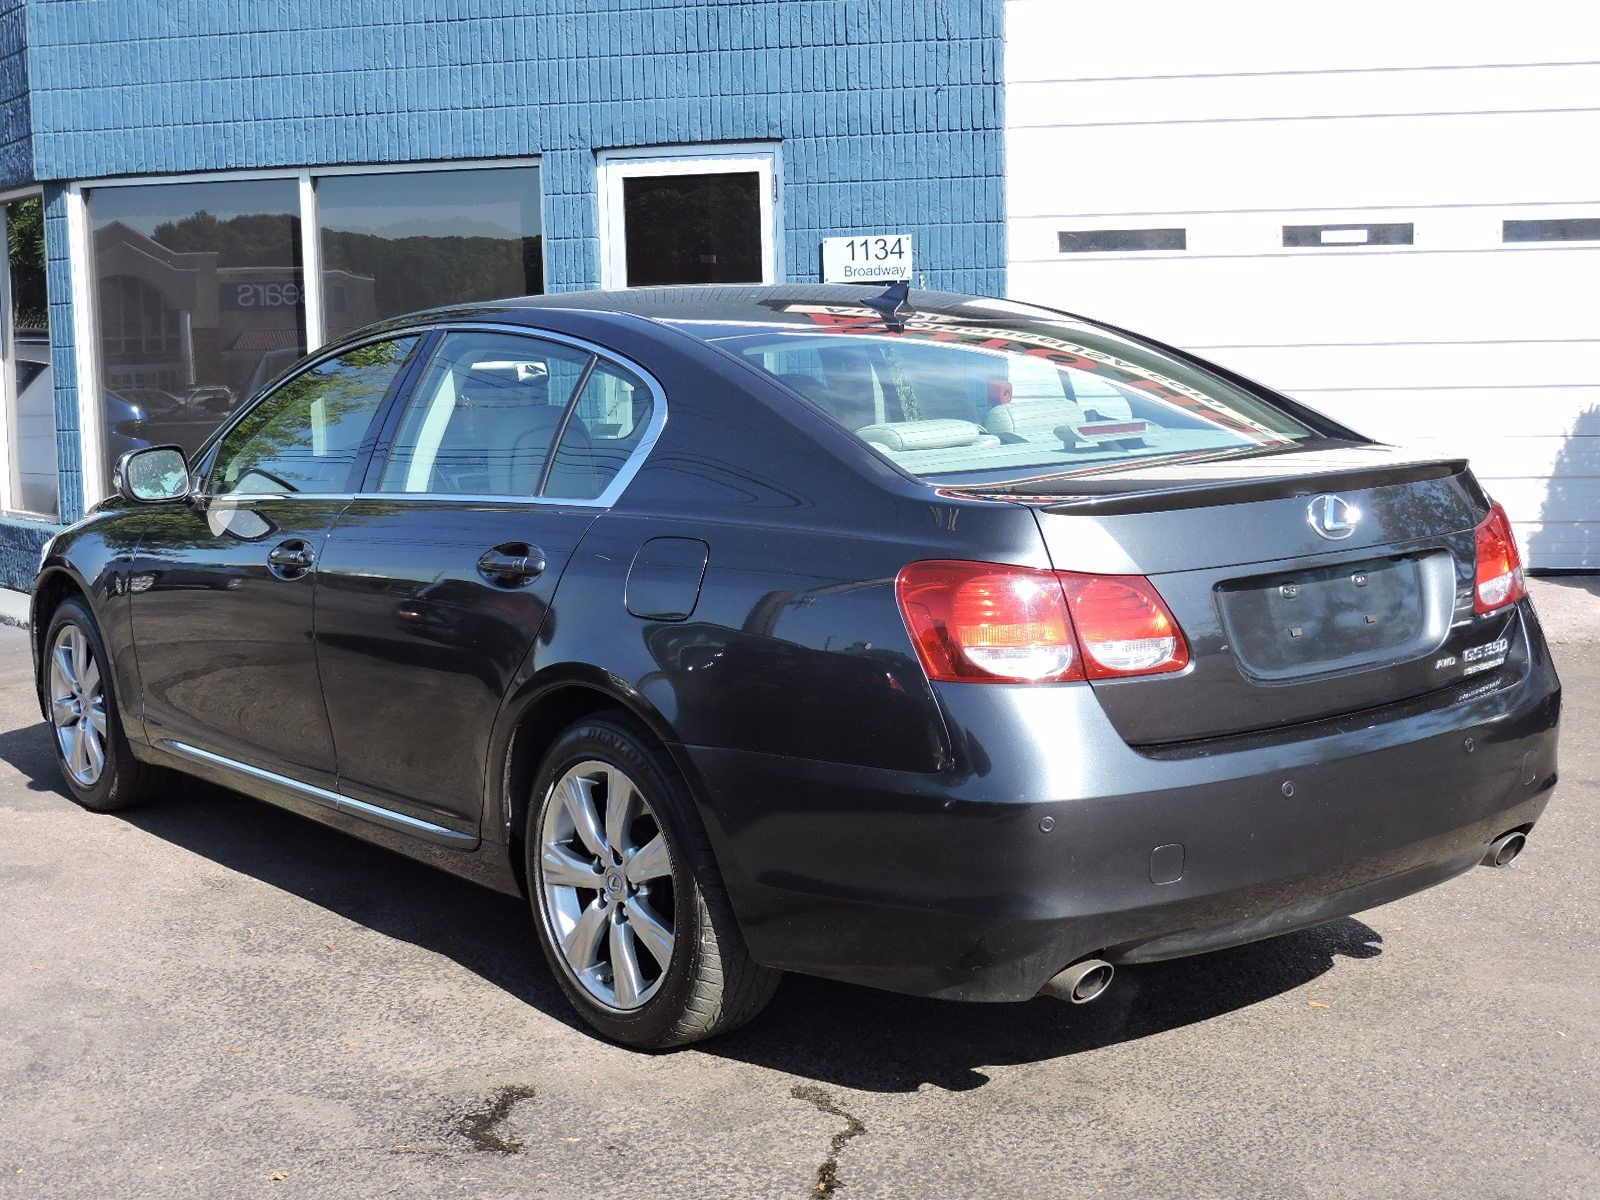 2011 Lexus GS 350 - All Wheel Drive - Navigation